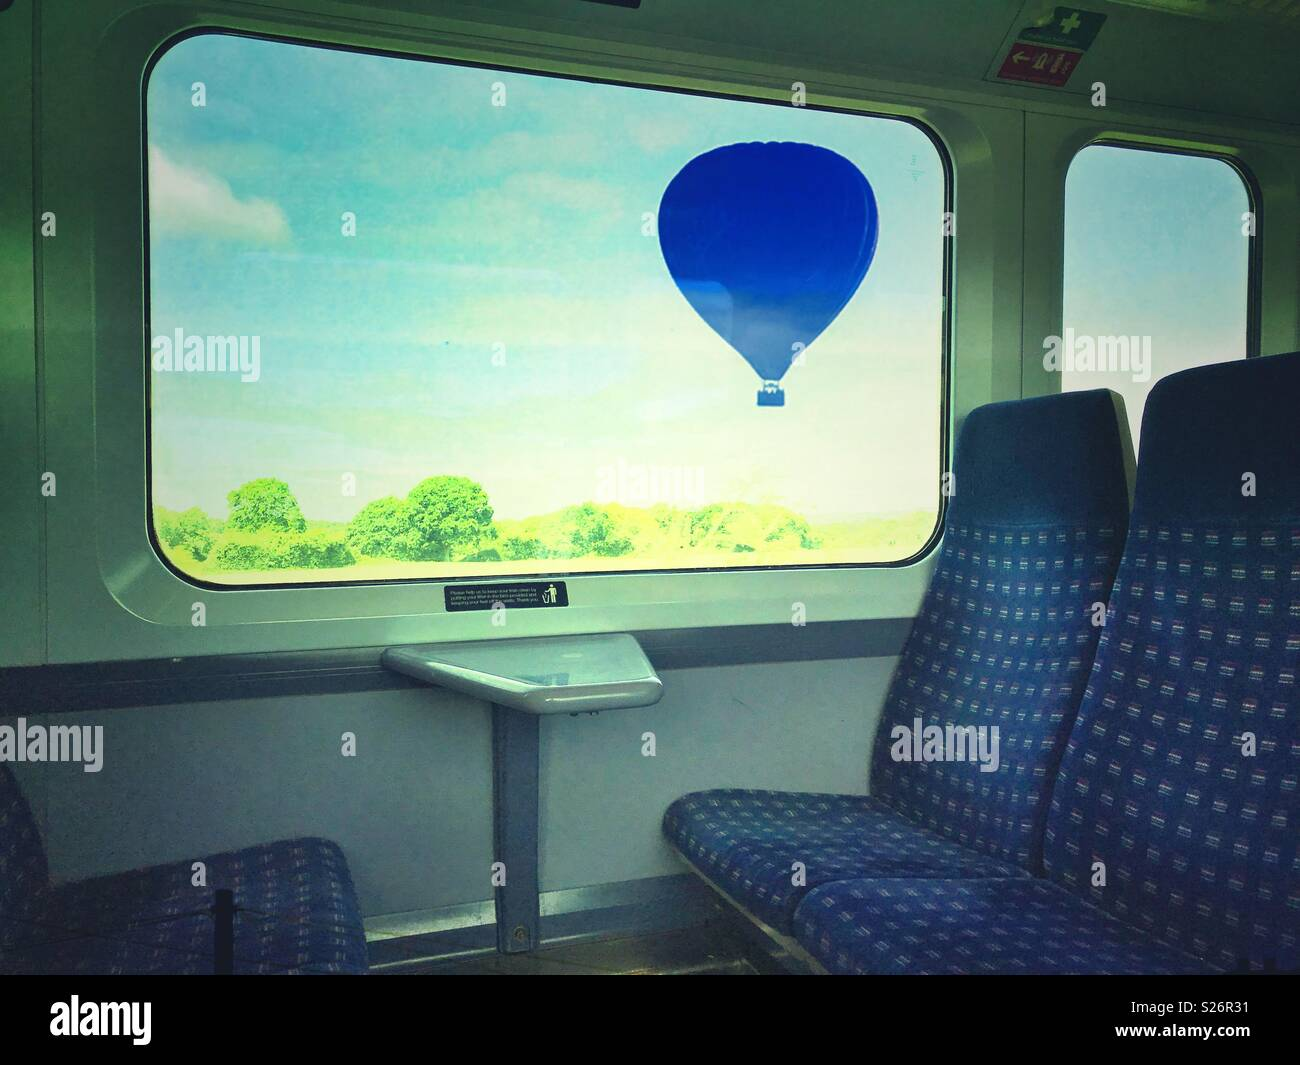 A hot air balloon outside the window of a train - Stock Image